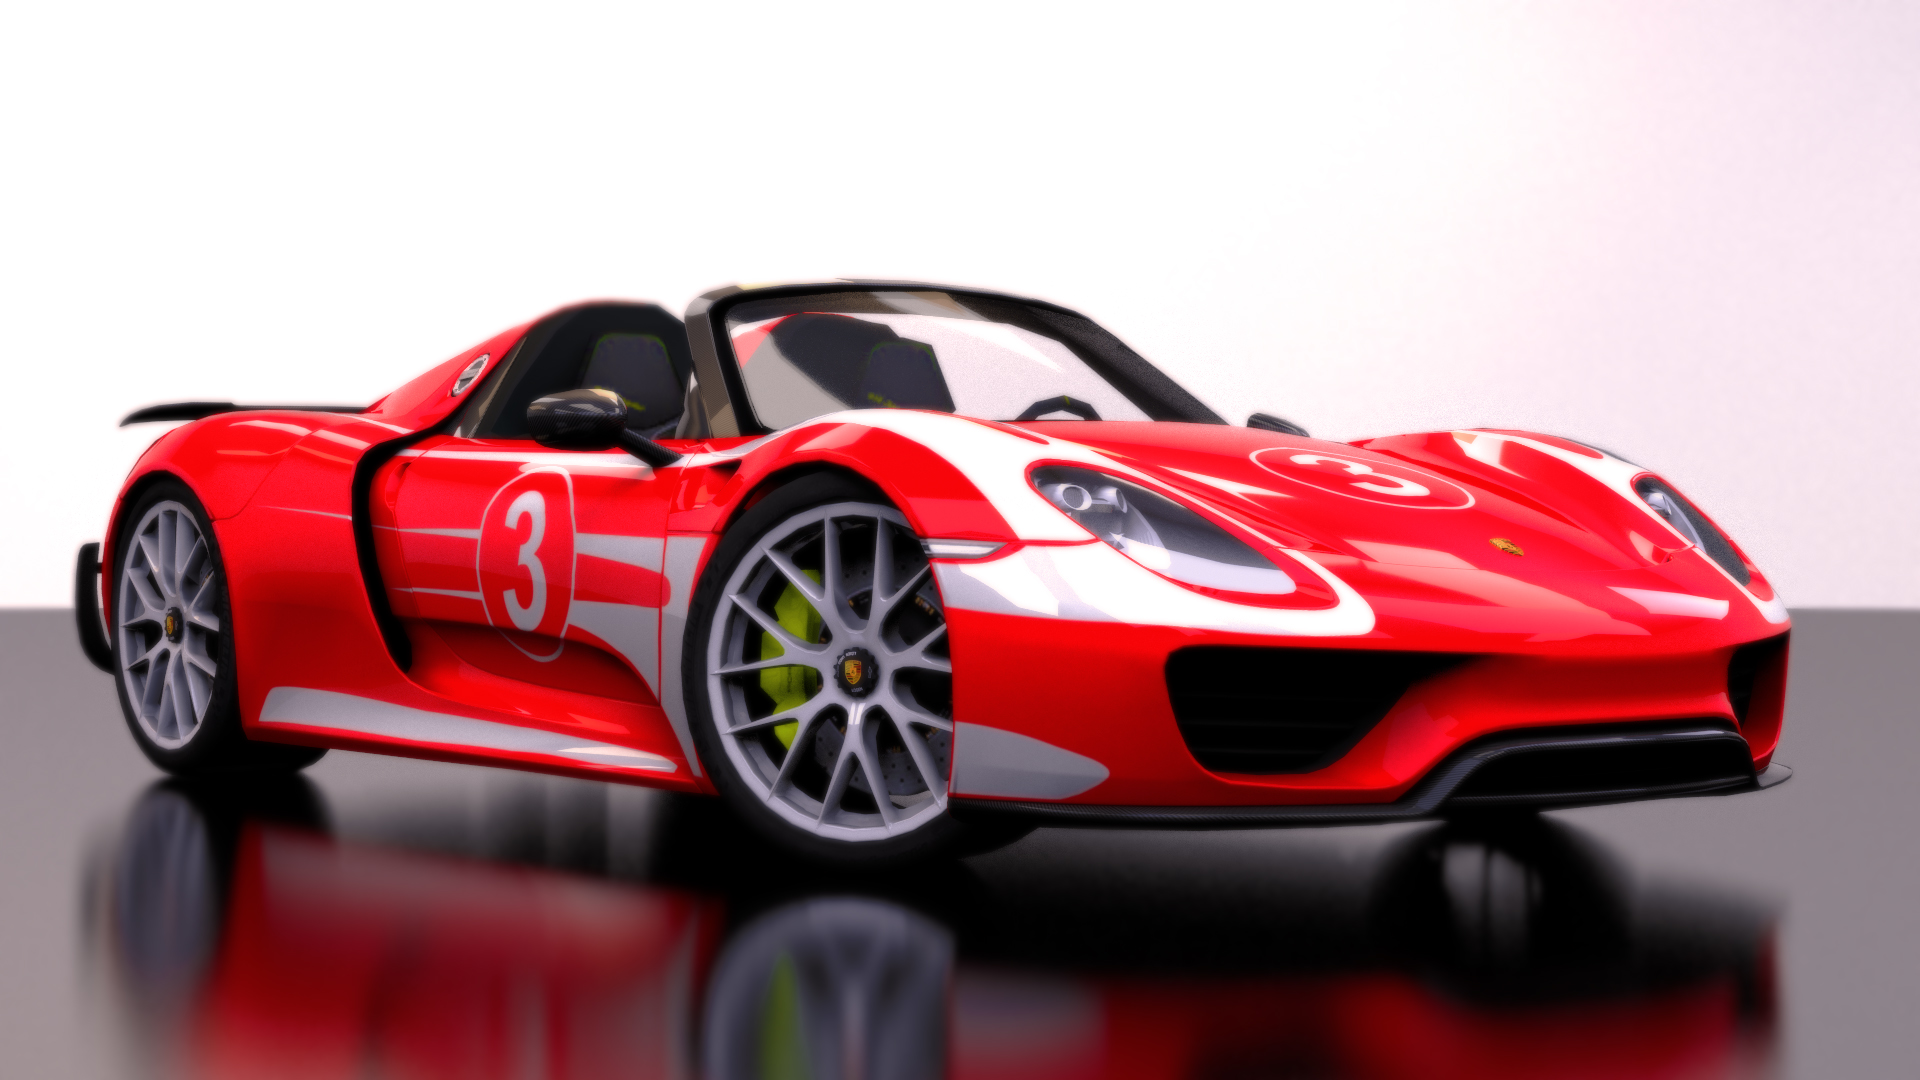 Porsche 918 Spyder Weissach Package Red By Bfg 9krc On